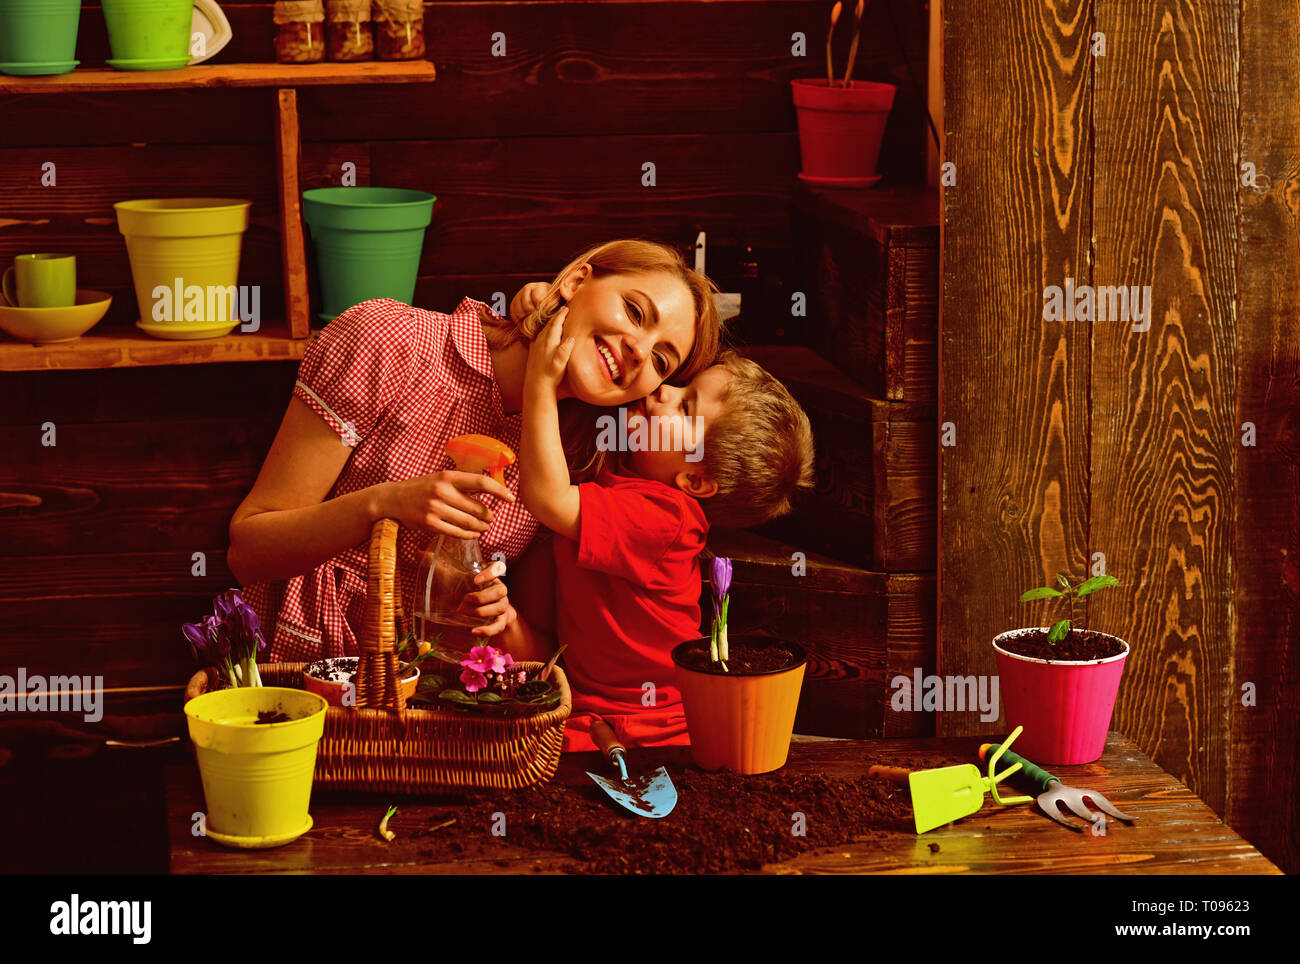 Love concept. Little child kiss mother planting flowers with love. Grown with love. Love and protect nature - Stock Image